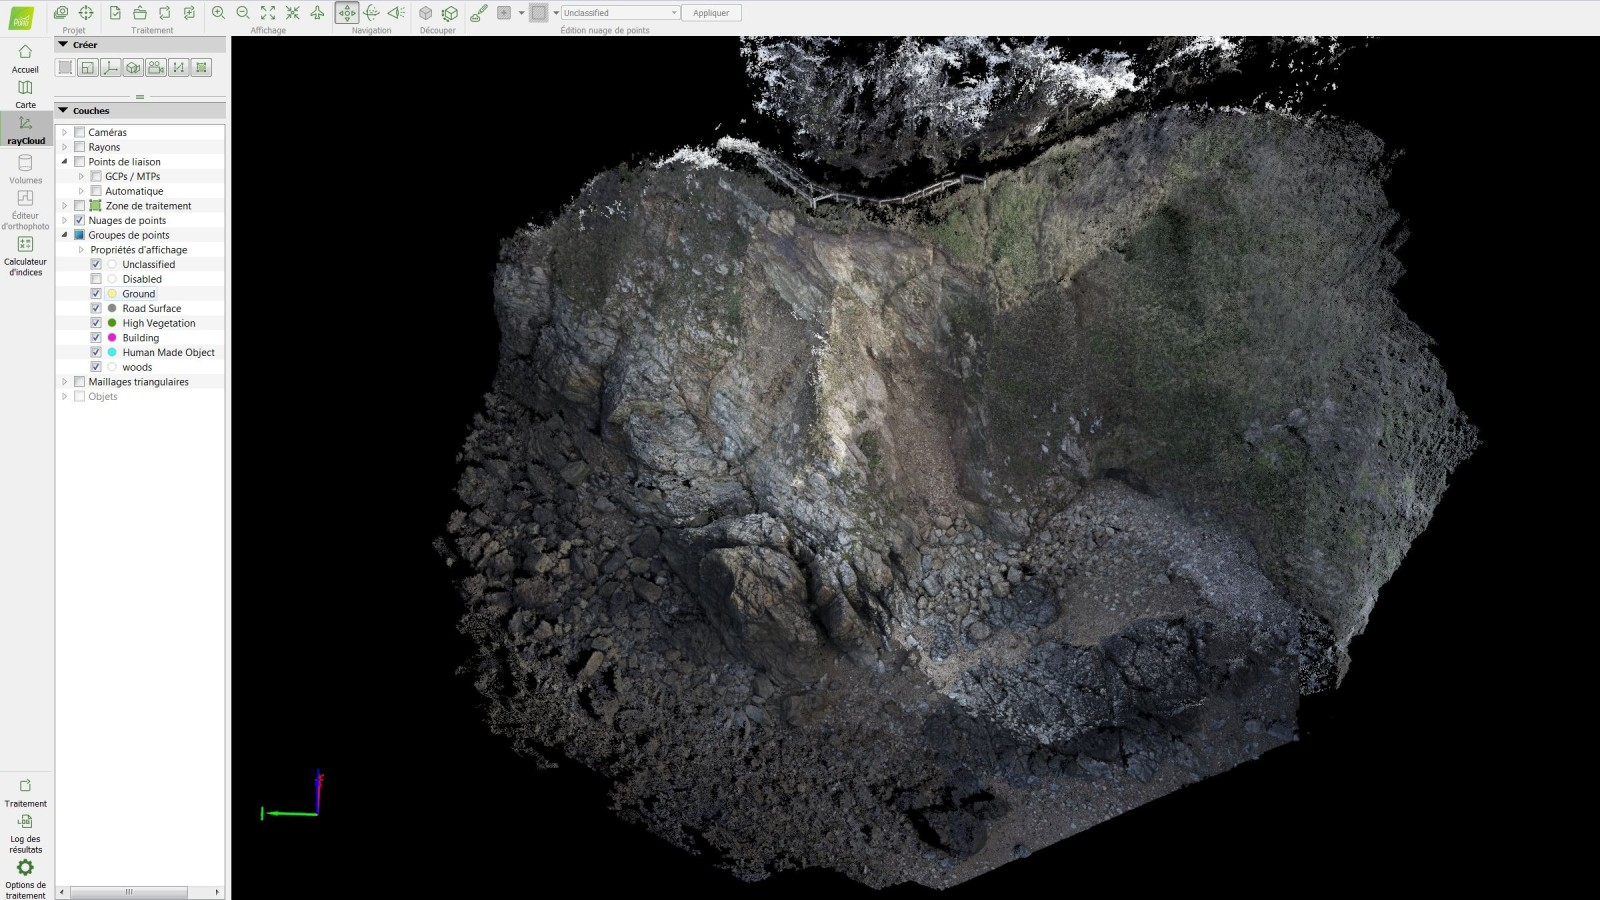 3D model of a coastline generated with Pix4Dmapper